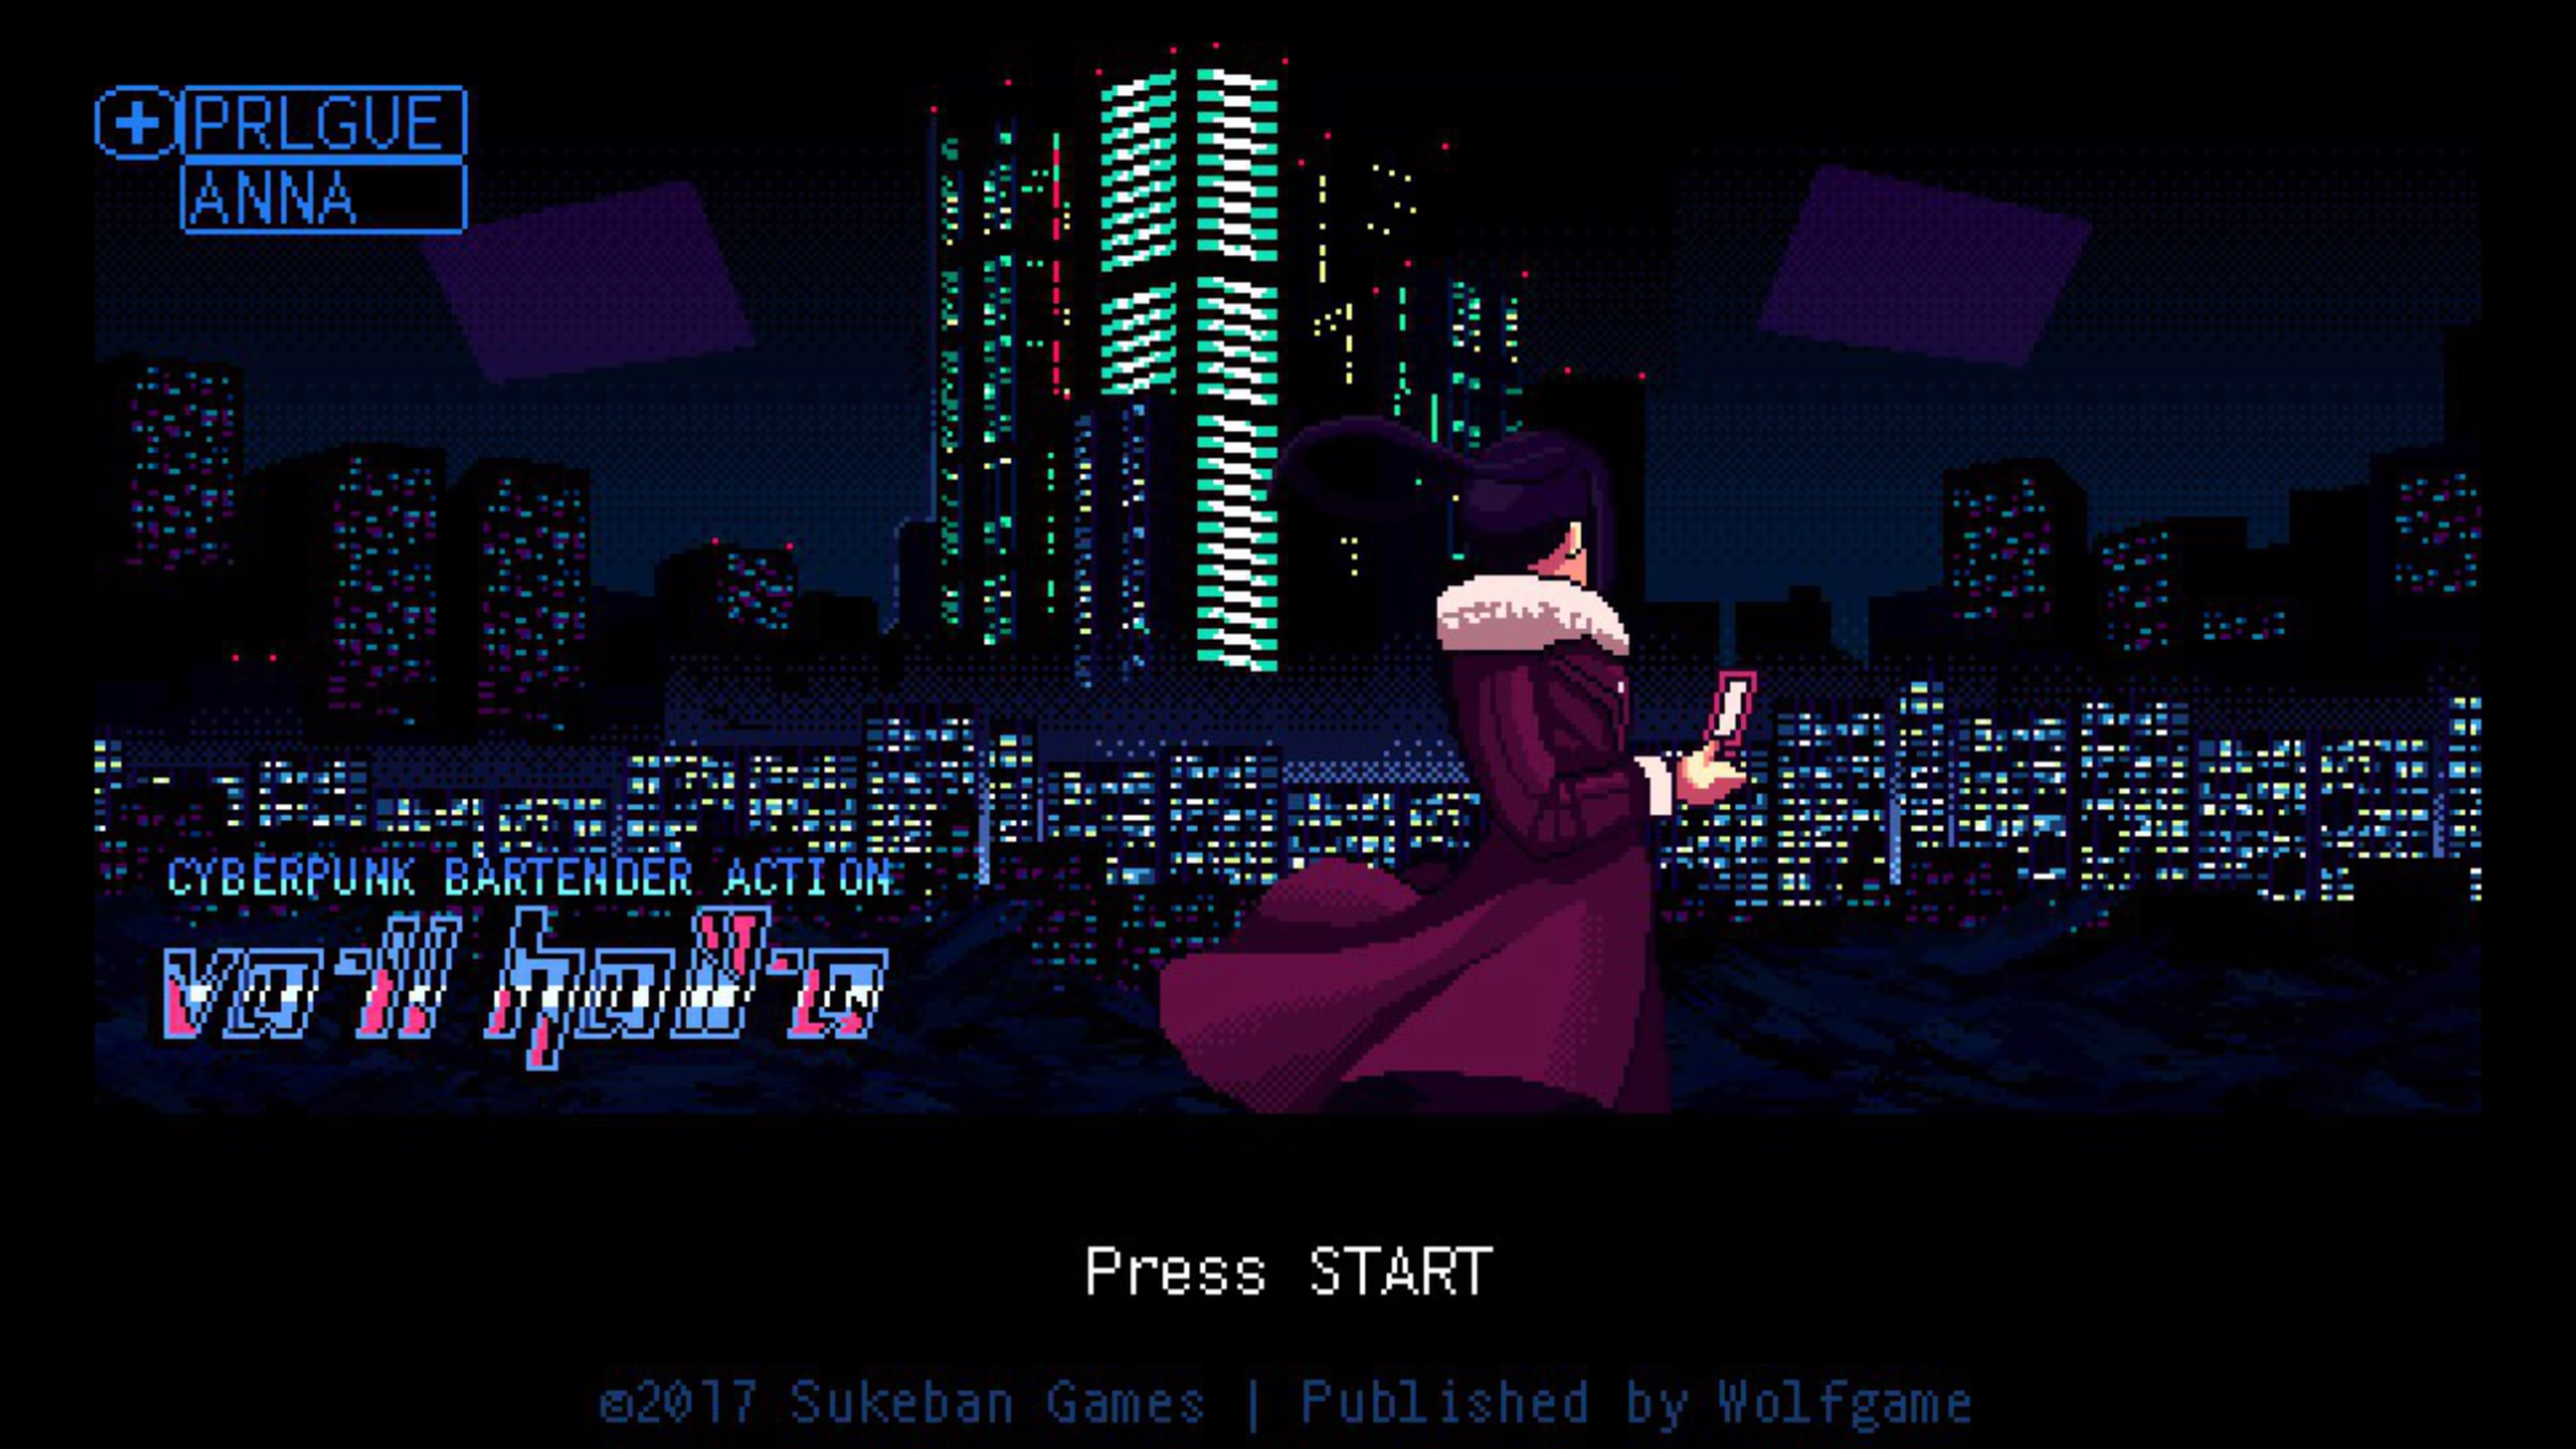 VA-11HALL-A PSV Test 011